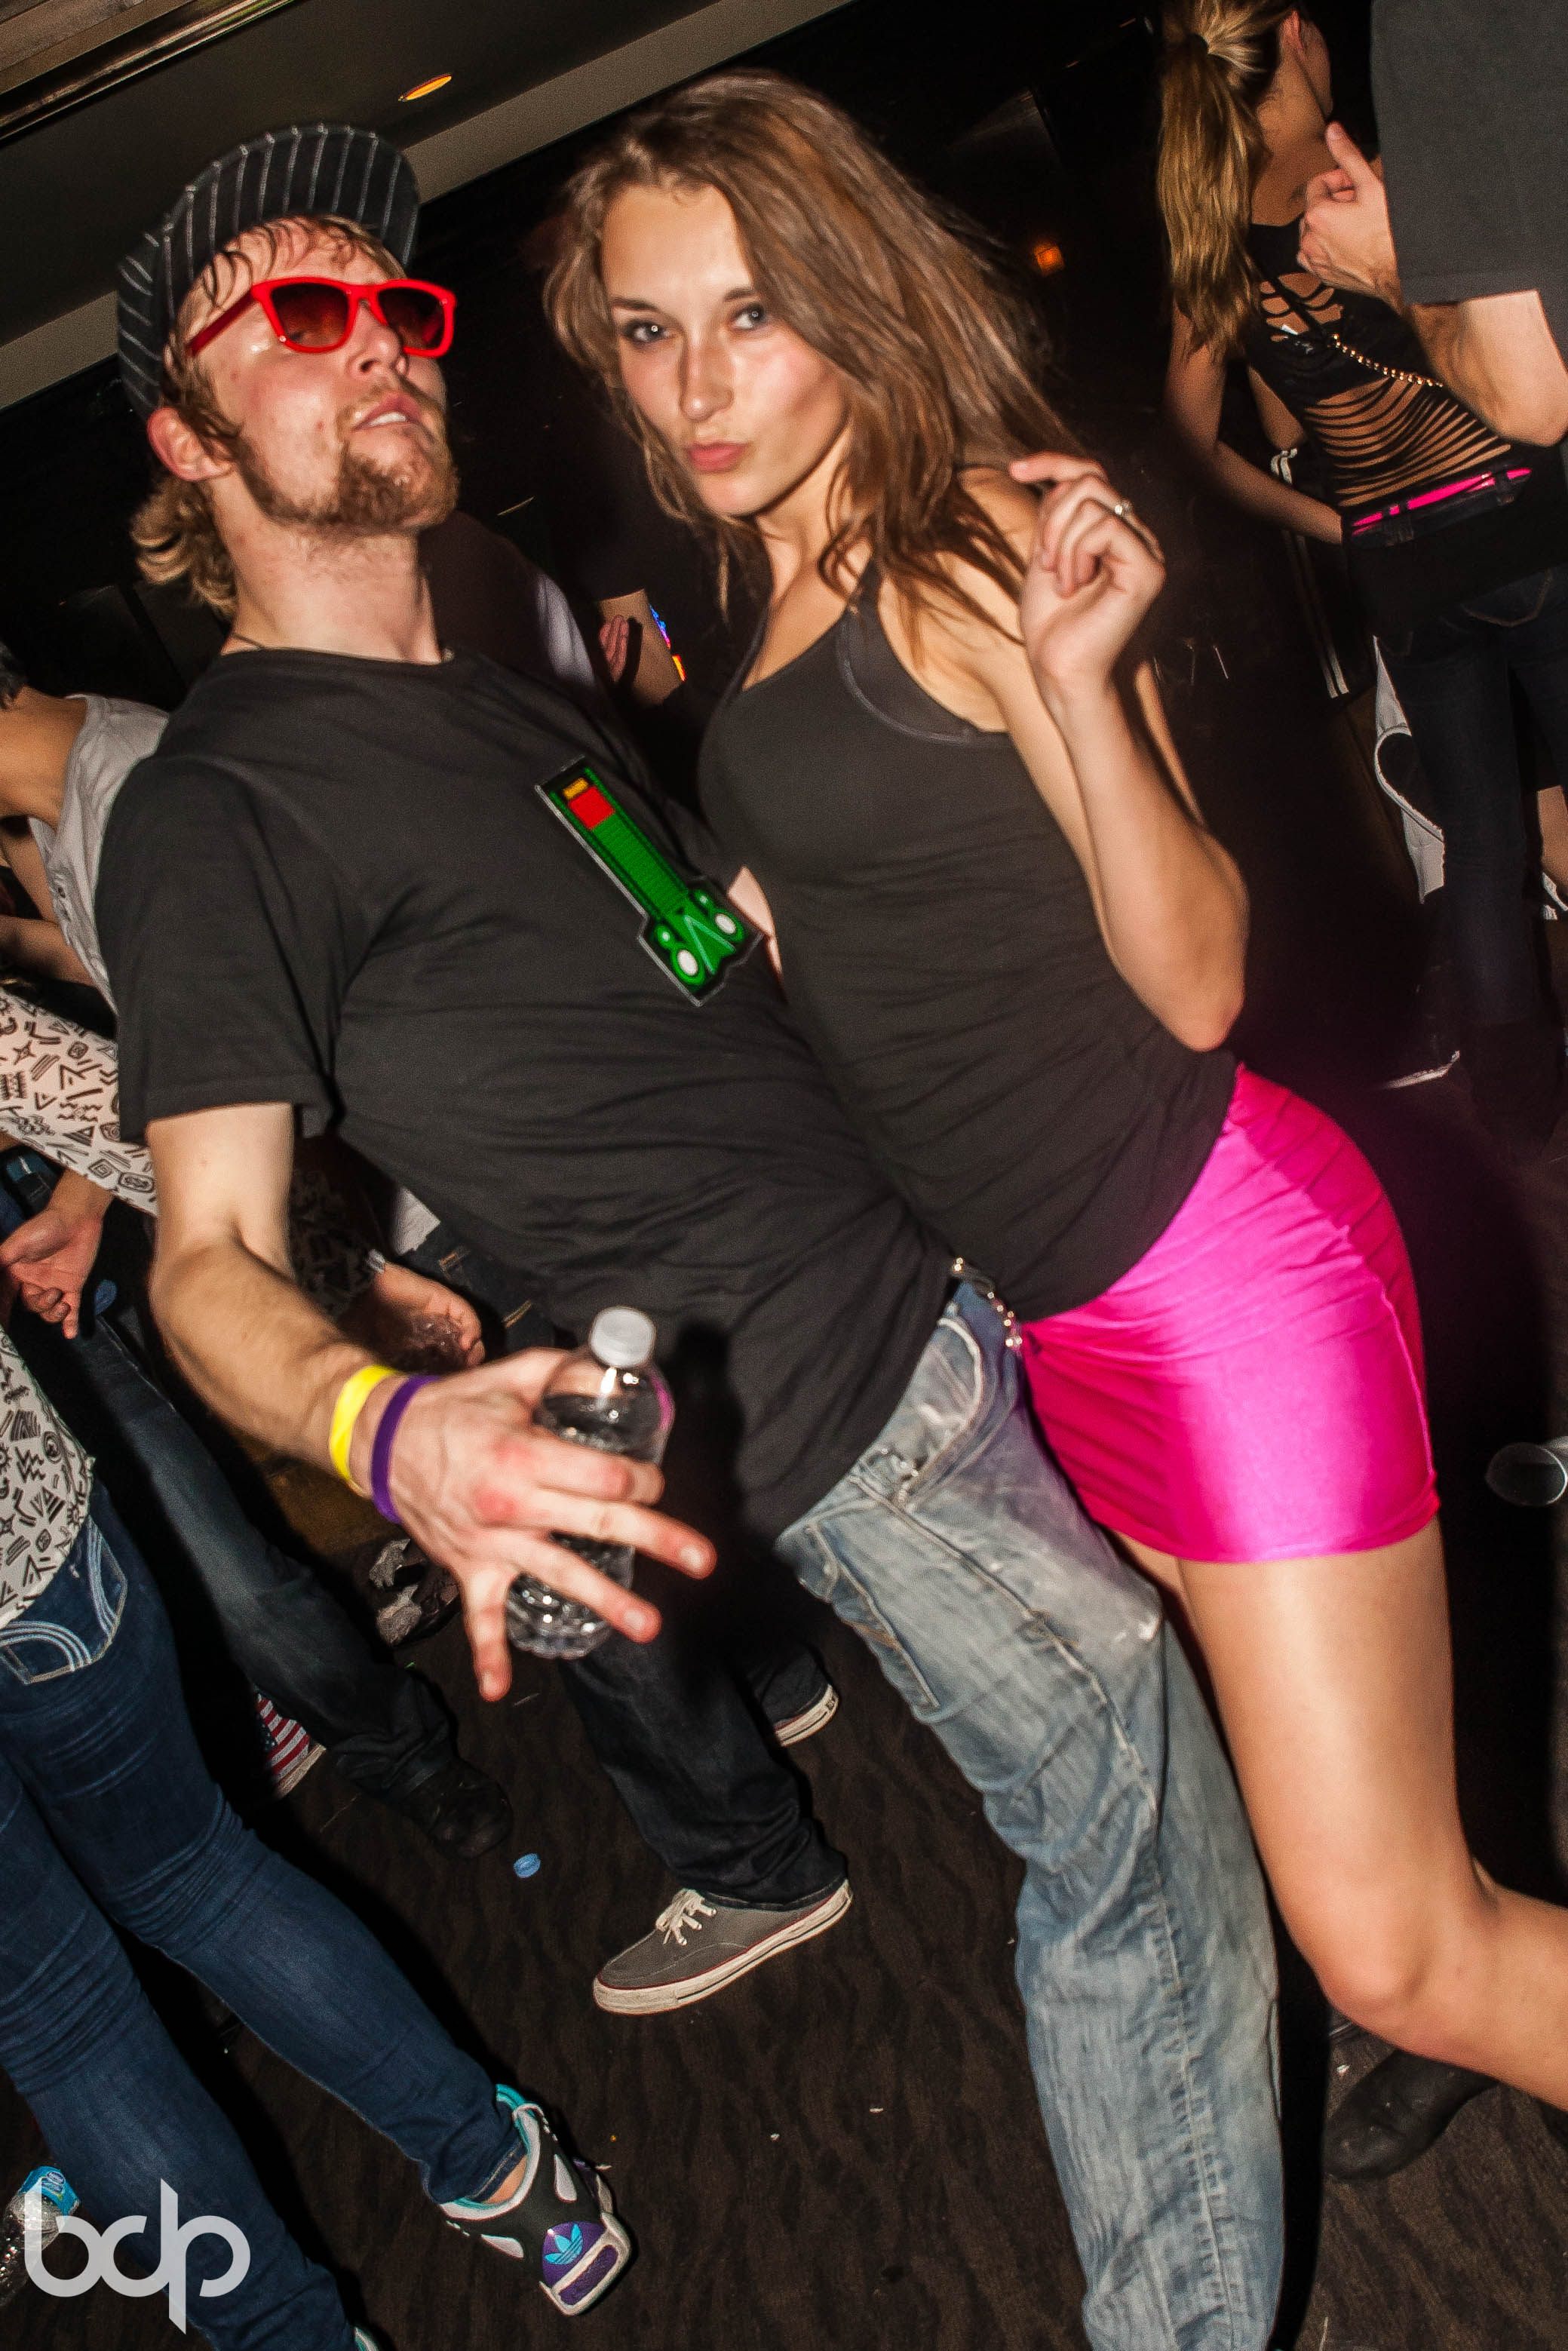 Aokify America Tour at Epic at Epic 110913 BDP-138.jpg